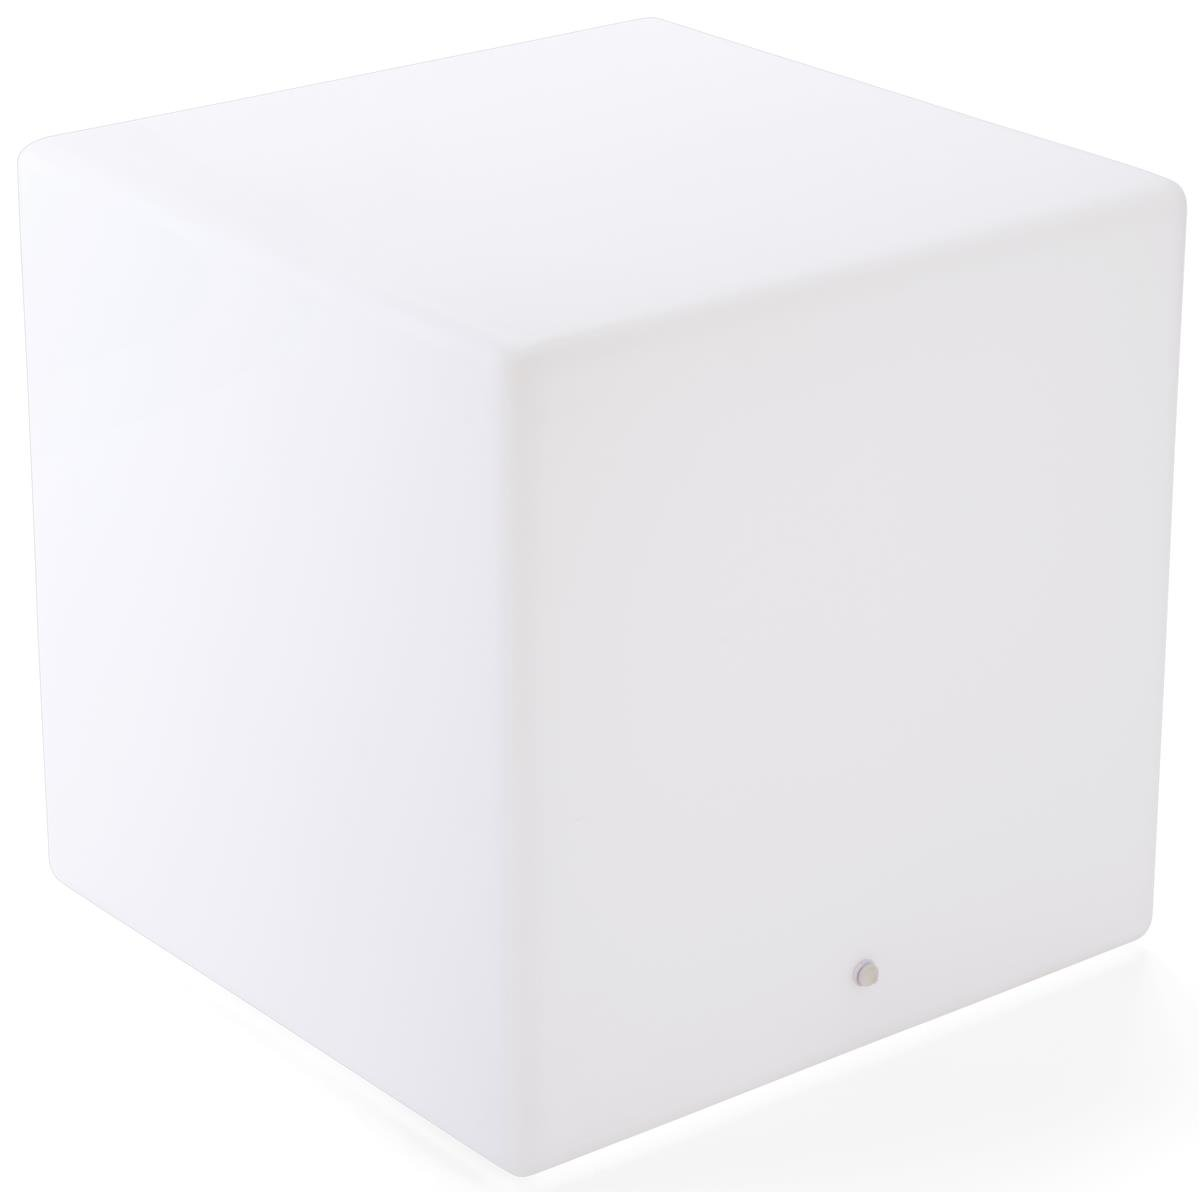 Displays2go LED Cube Table, 16 Color Choices, Rechargeable Battery - White (FDLED23SQ)